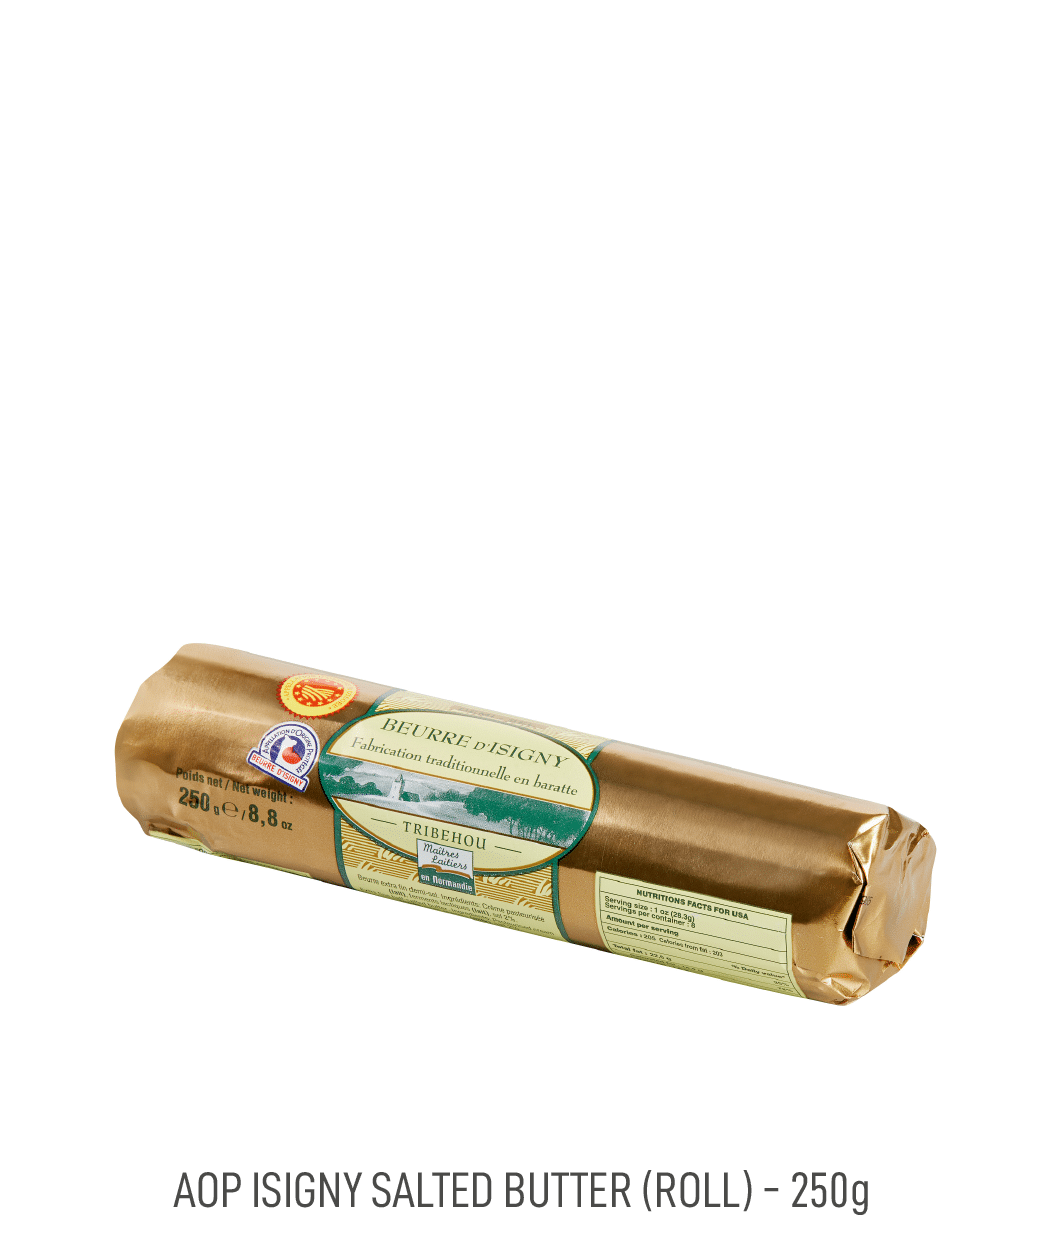 Beurre demi-sel AOP Isigny tribehou 250g rouleau